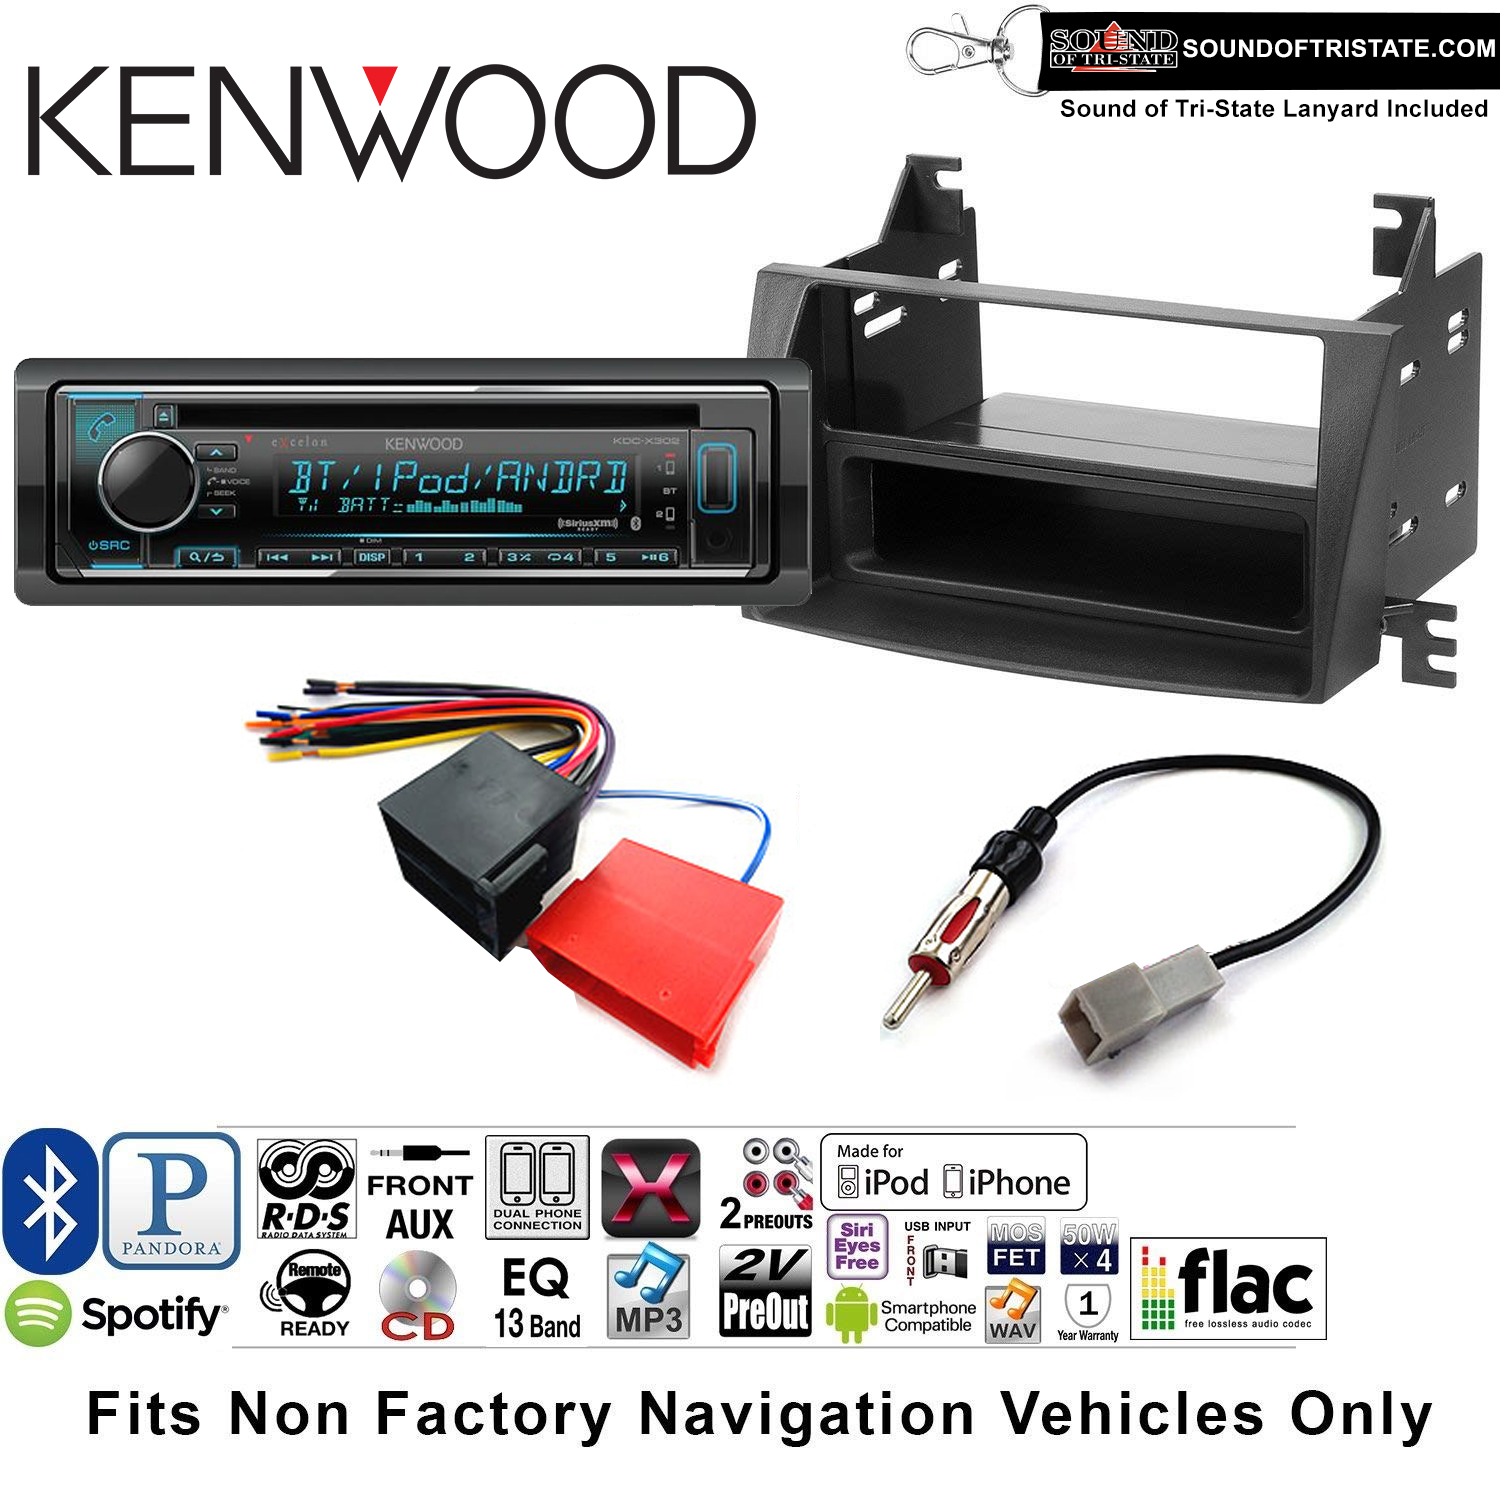 Kenwood KDCX302 Double Din Radio Install Kit with Bluetooth, CD Player, USB/AUX Fits 2009-2010 Hyundai Sonata(NON AMPLIFIED SYSTEM) and a SOTS lanyard included